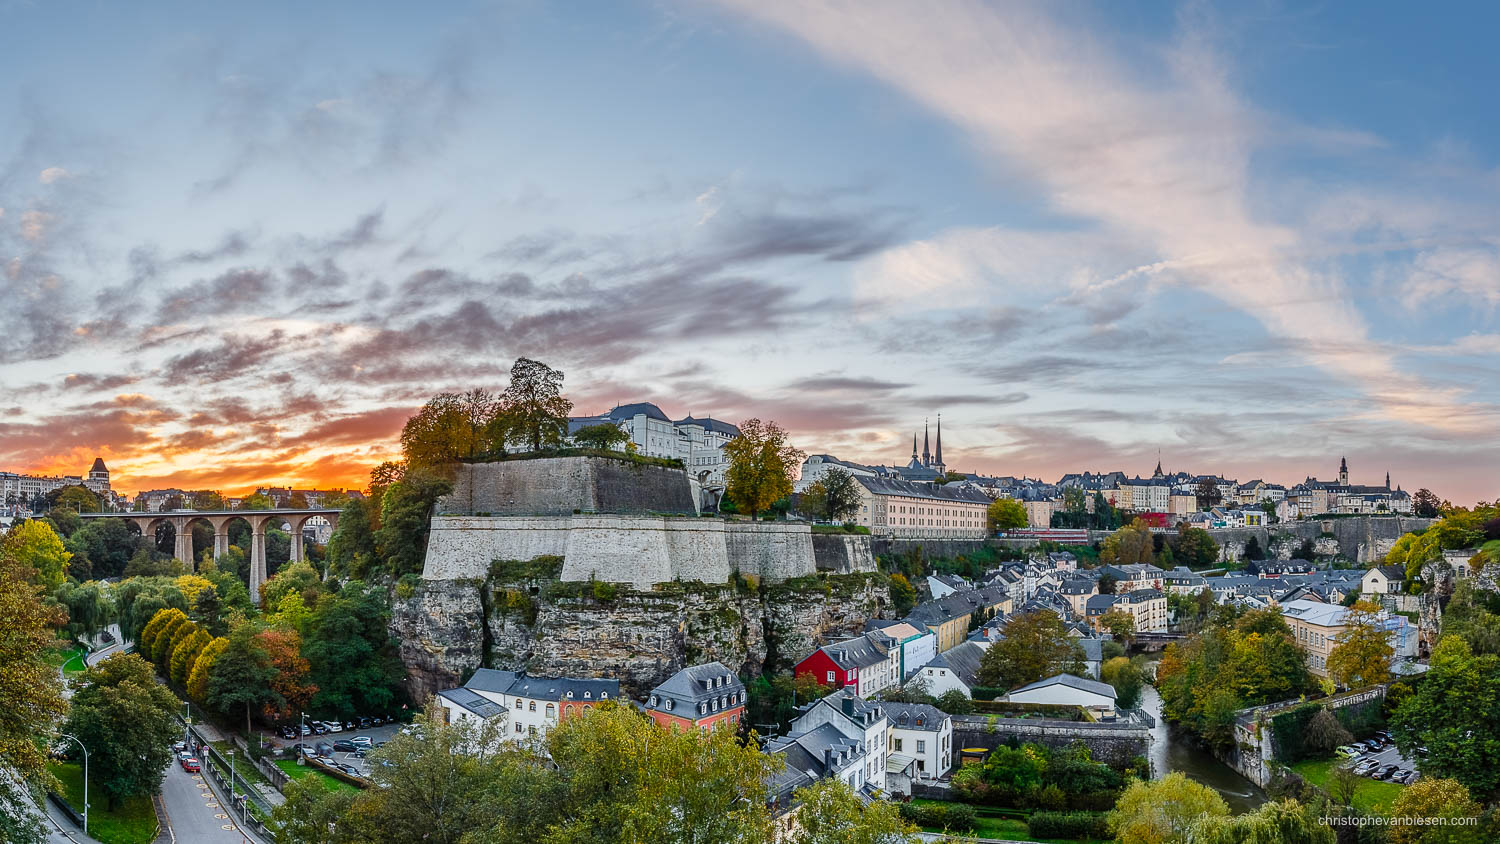 Autumn in Luxembourg - Sunset over the city of Luxembourg with the valley of the Petrusse and the Grund and its Alzette river seperated by the mighty Corniche - Crossroads